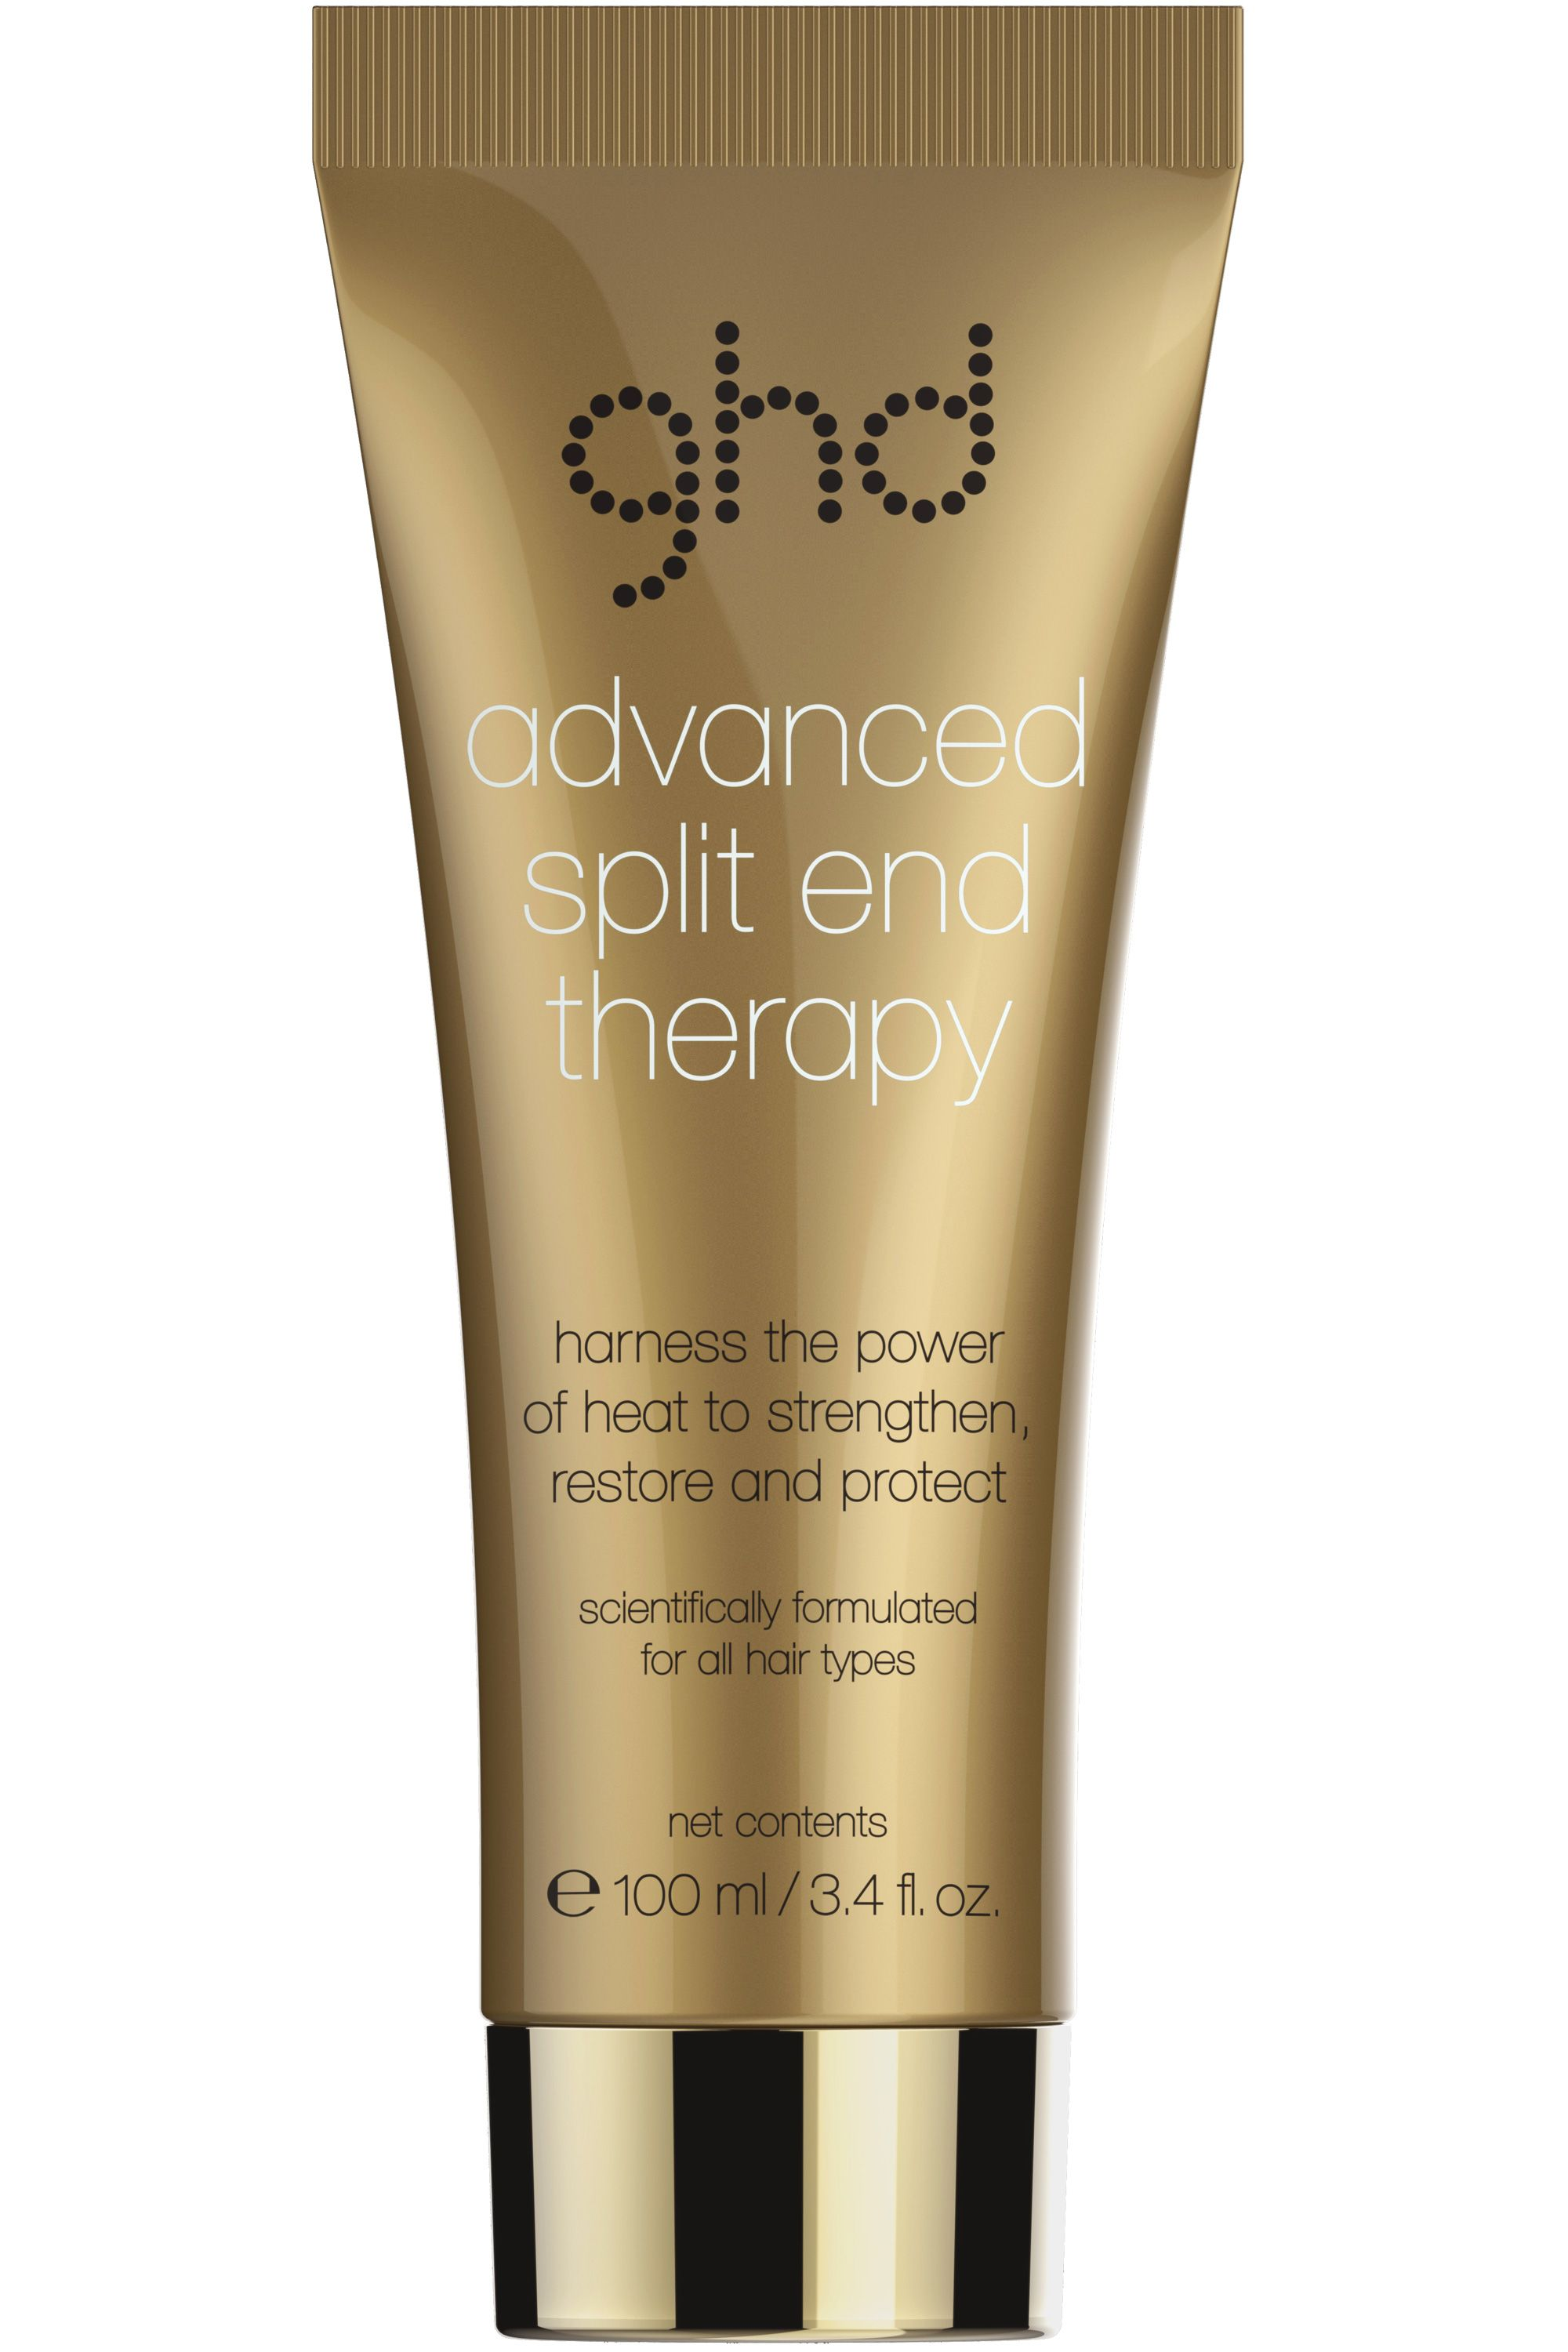 Blissim : ghd - Soin réparateur Advanced Split End Therapy - Soin réparateur Advanced Split End Therapy